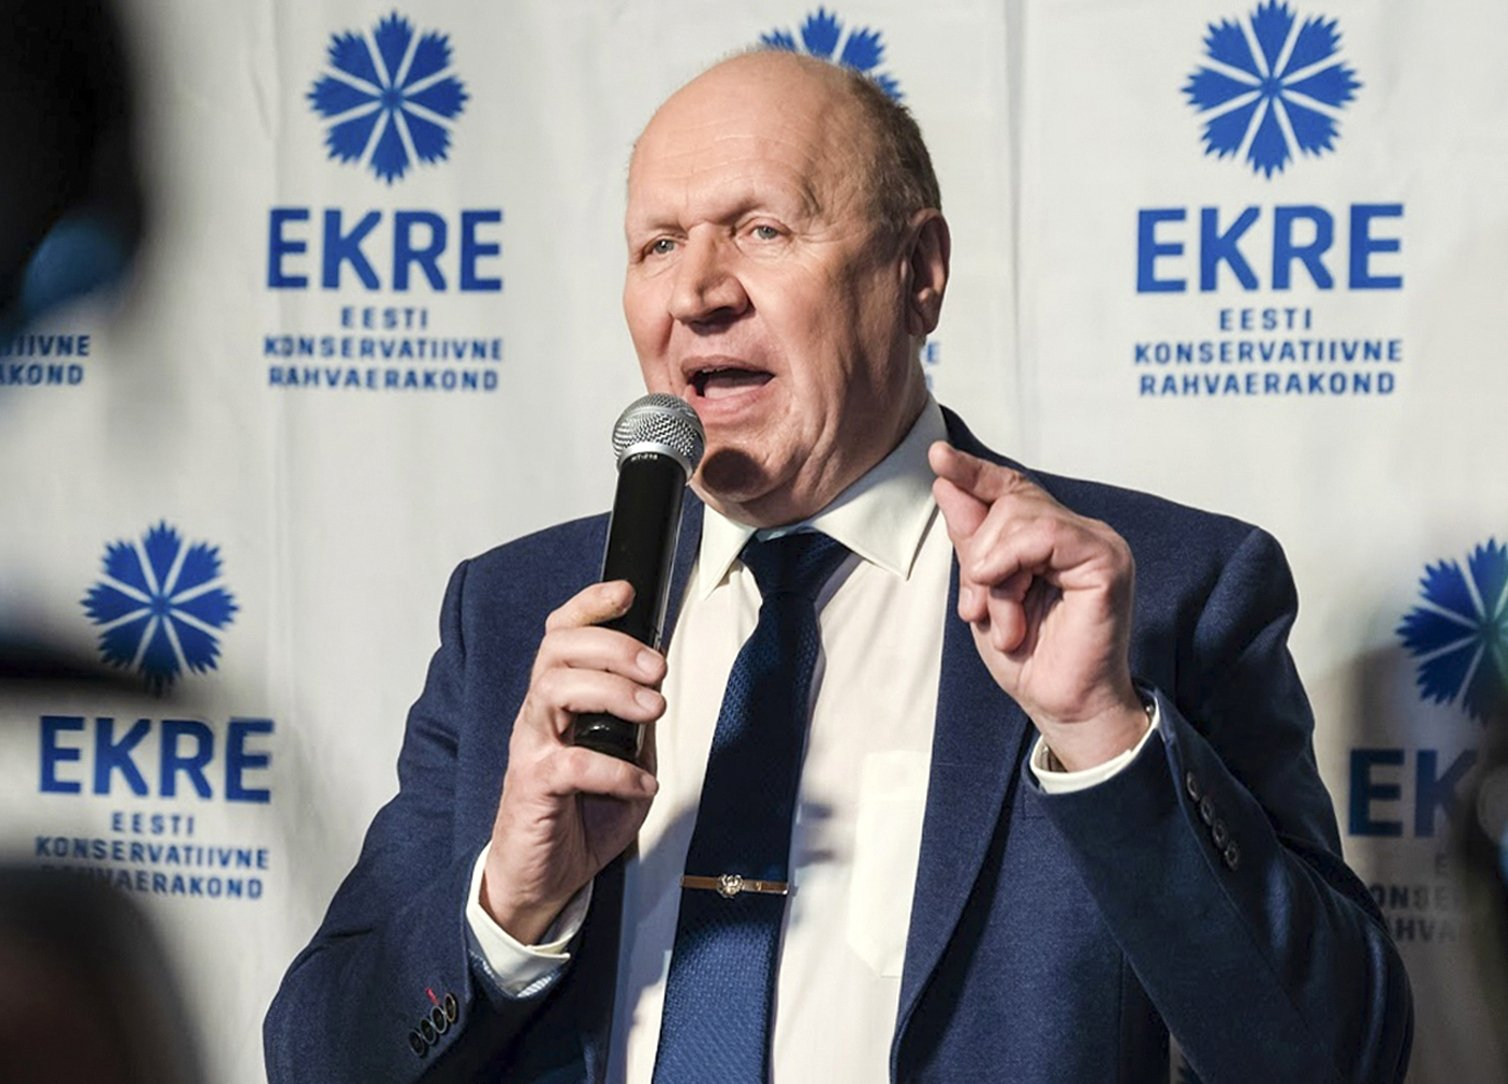 Estonia's far-right interior minister, Mart Helme, speaks at Ekre party headquarters after parliamentary elections in Tallinn, Estonia, March 4, 2019. (AP Photo)